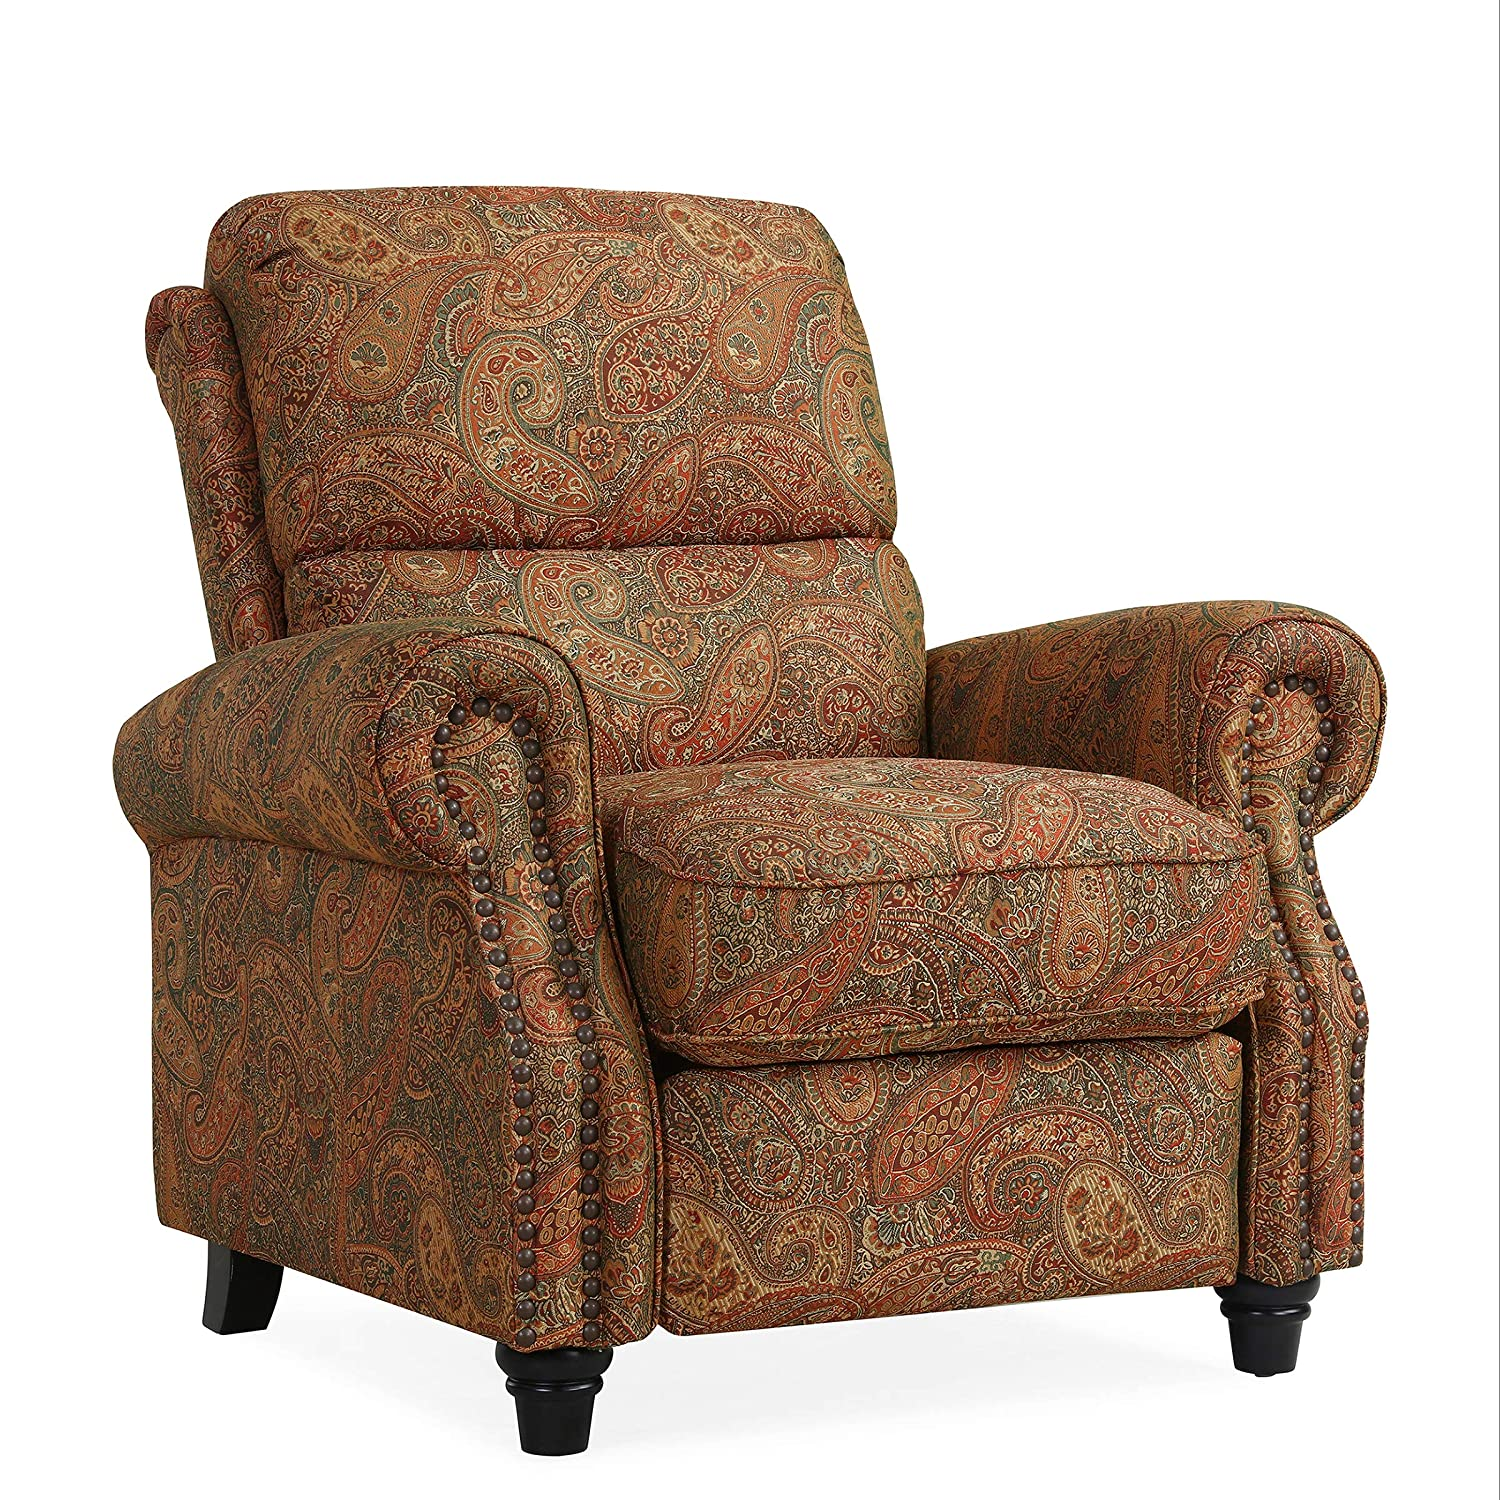 Incredible Domesis Cortez Cloth Push Back Recliner Chair Paisley Machost Co Dining Chair Design Ideas Machostcouk